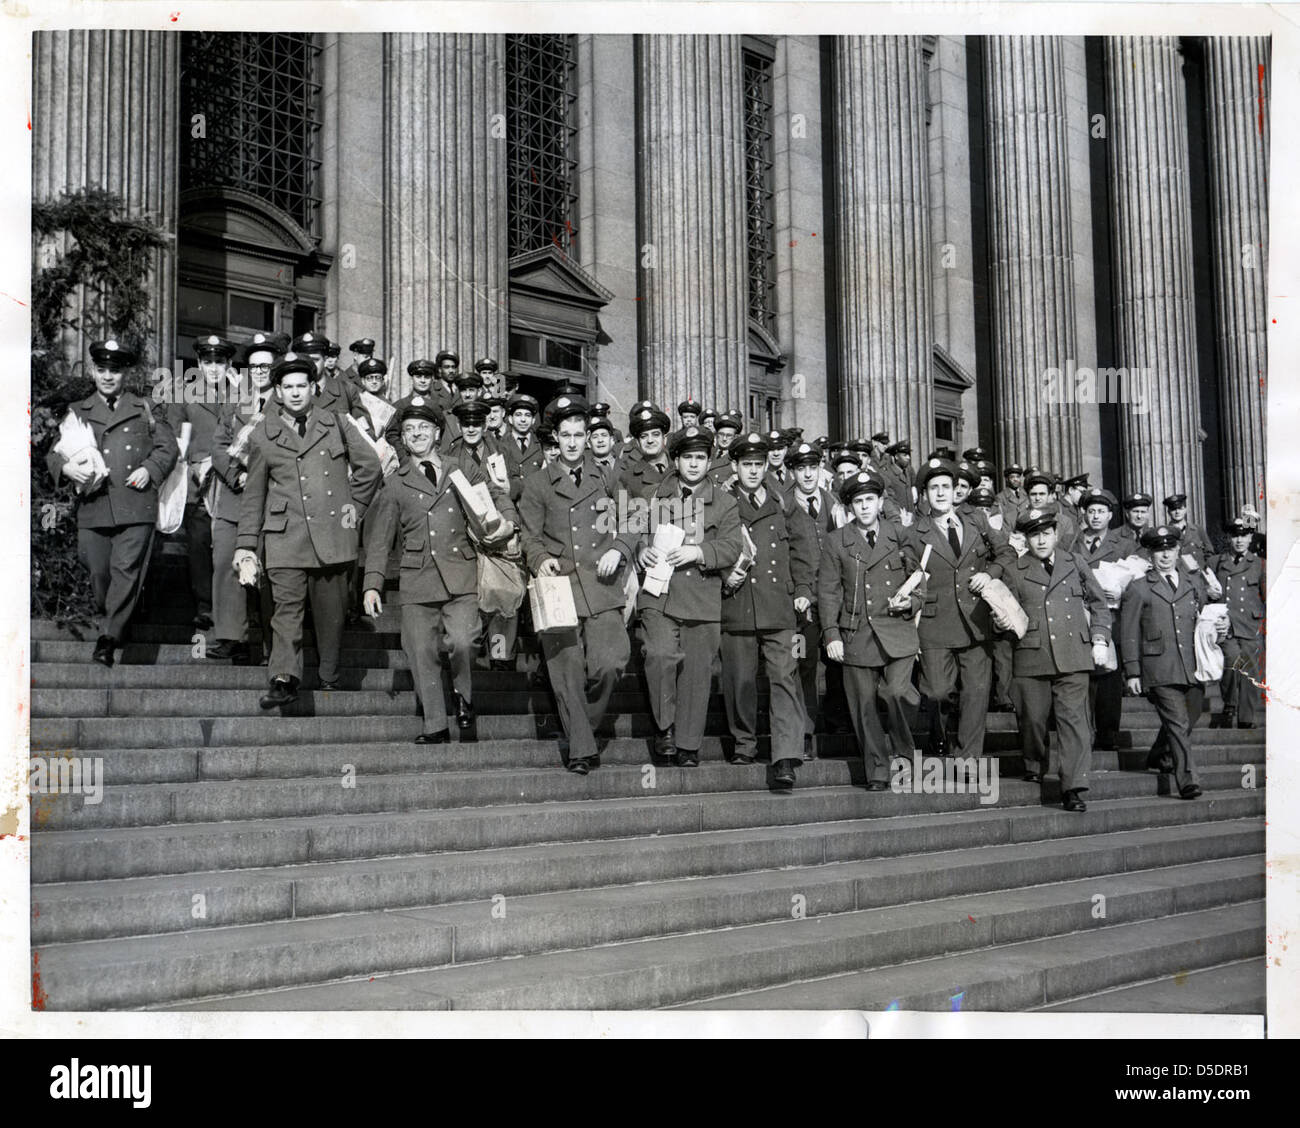 Letter Carriers in New York City - Stock Image